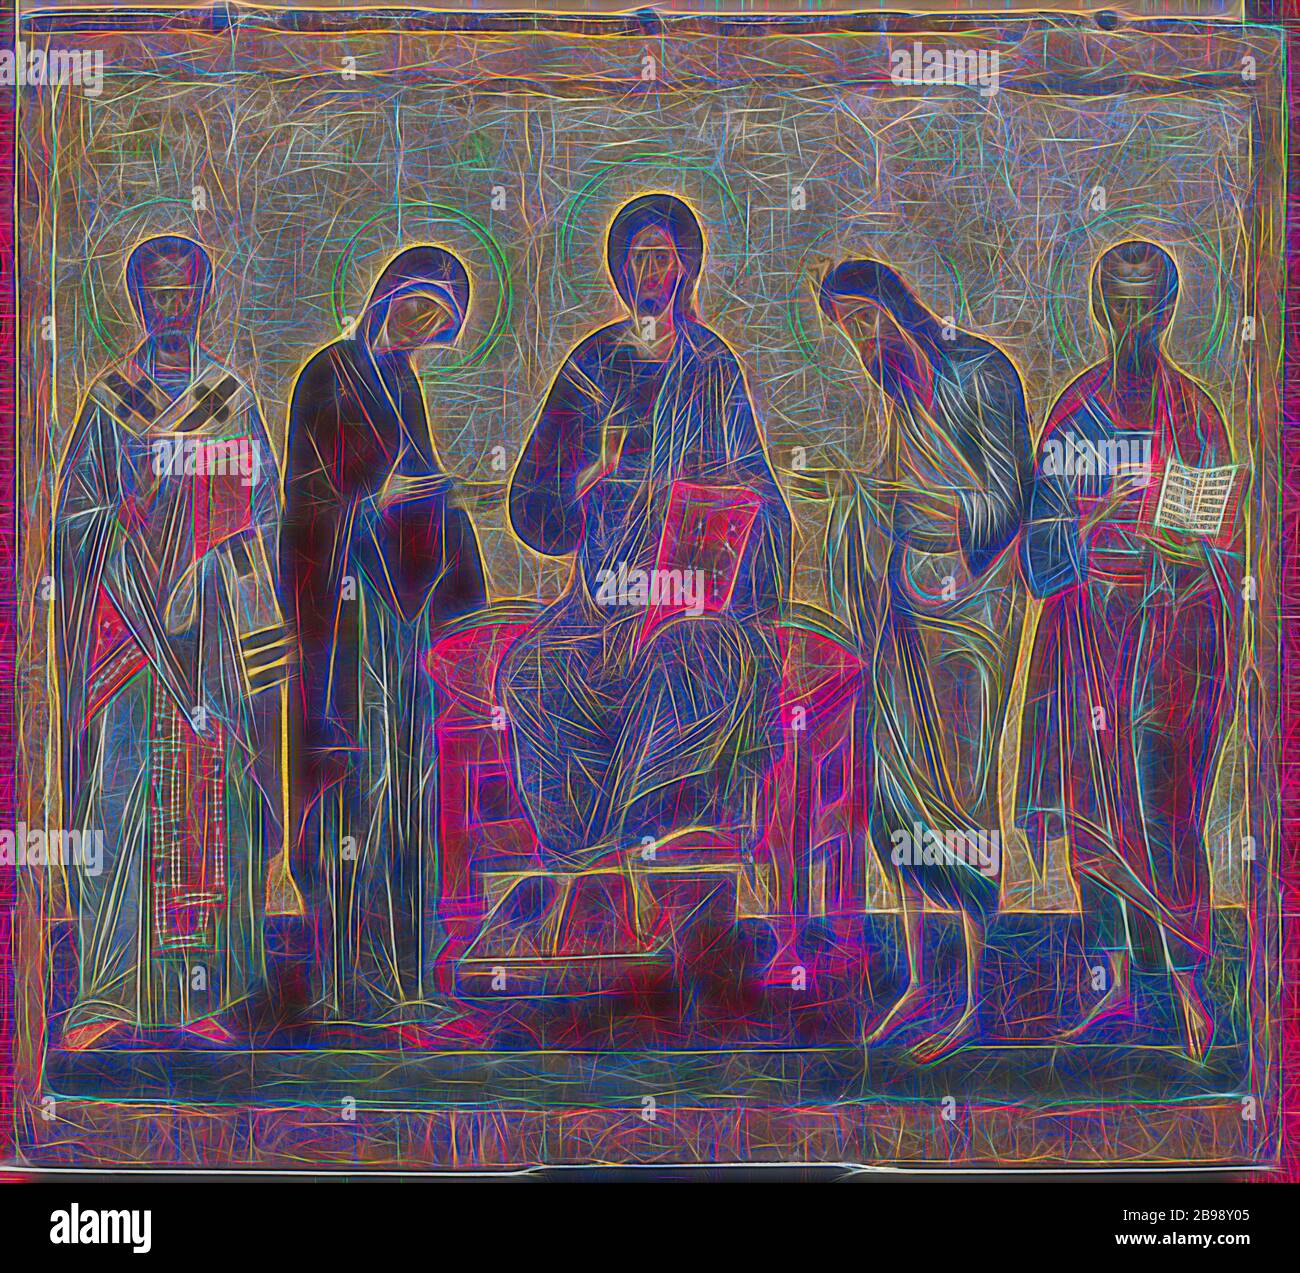 Deesis With Saint Nicholas And An Unknown Saint Icon Height 94 Cm 37 Inches Width 104 Cm 40 9 Inches Reimagined By Gibon Design Of Warm Cheerful Glowing Of Brightness And Light Rays Quick and easy cm to inches conversion: alamy